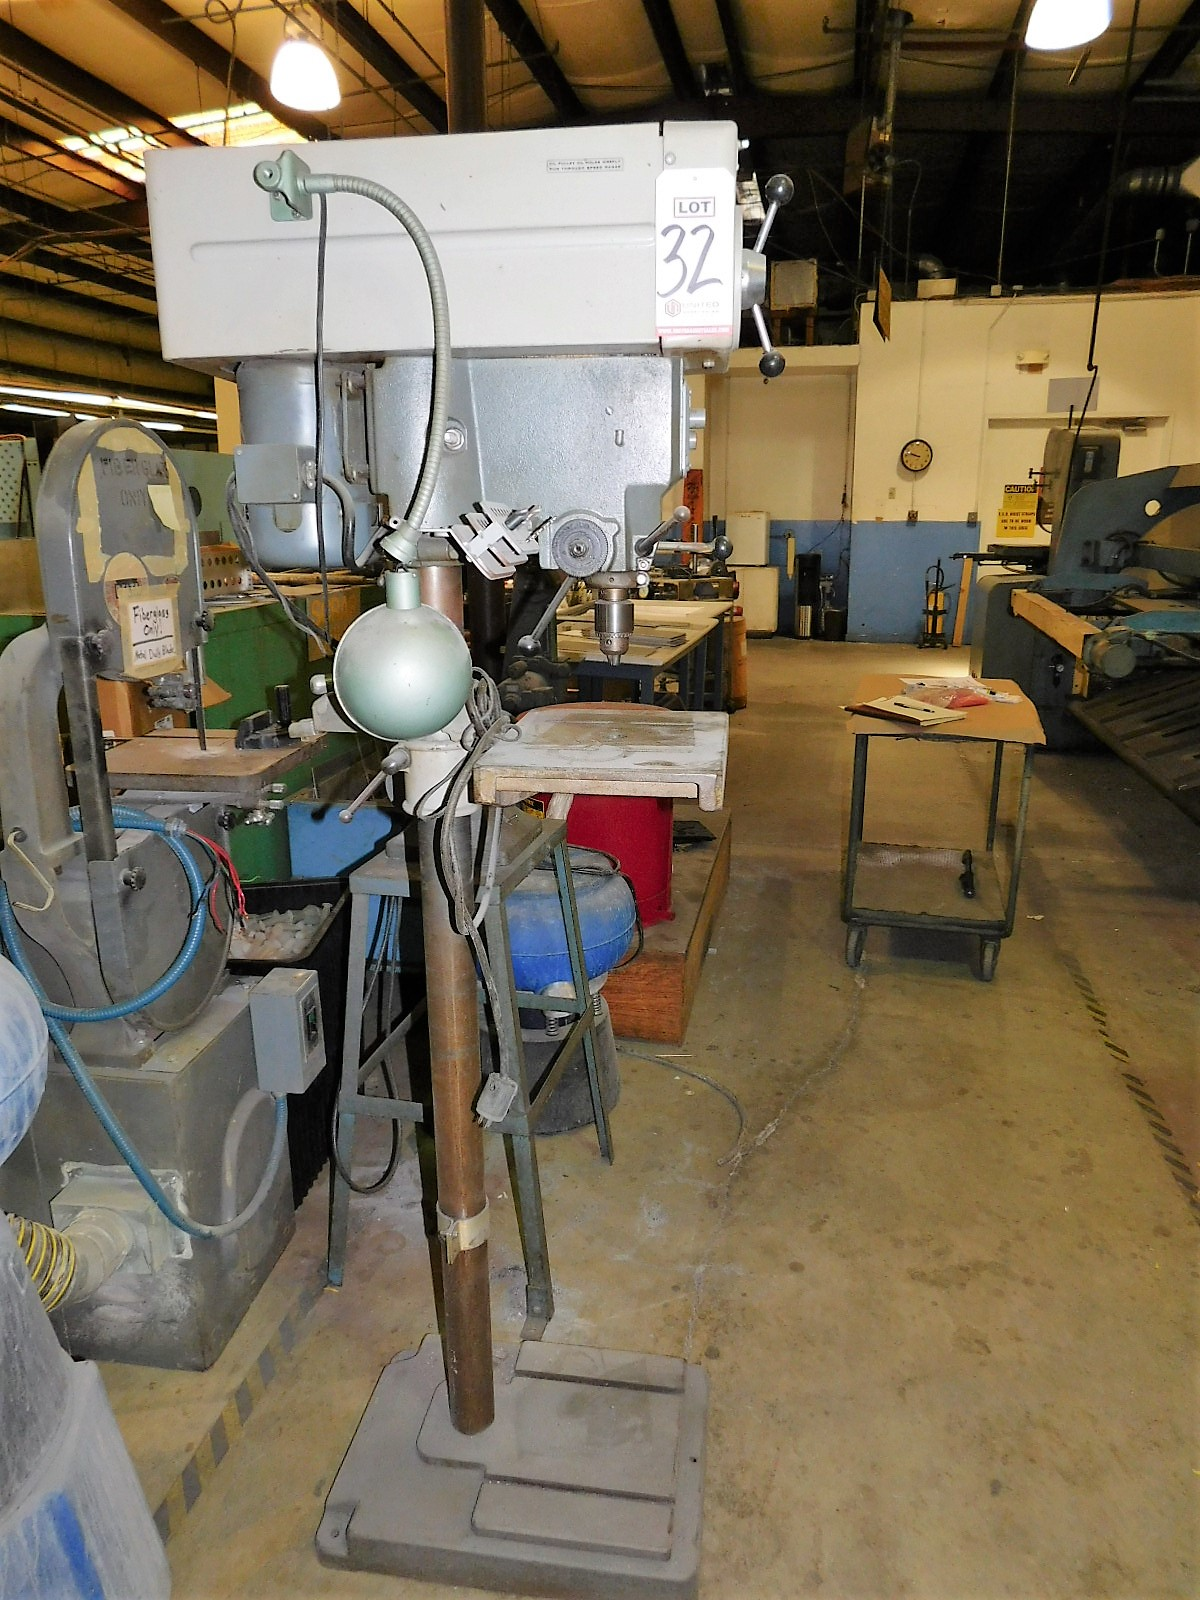 """Lot 32 - ROCKWELL DELTA 15"""" DRILL PRESS, SERIES NO. 15-655, S/N 1487628, FLOOR STAND, VARIABLE SPEED"""